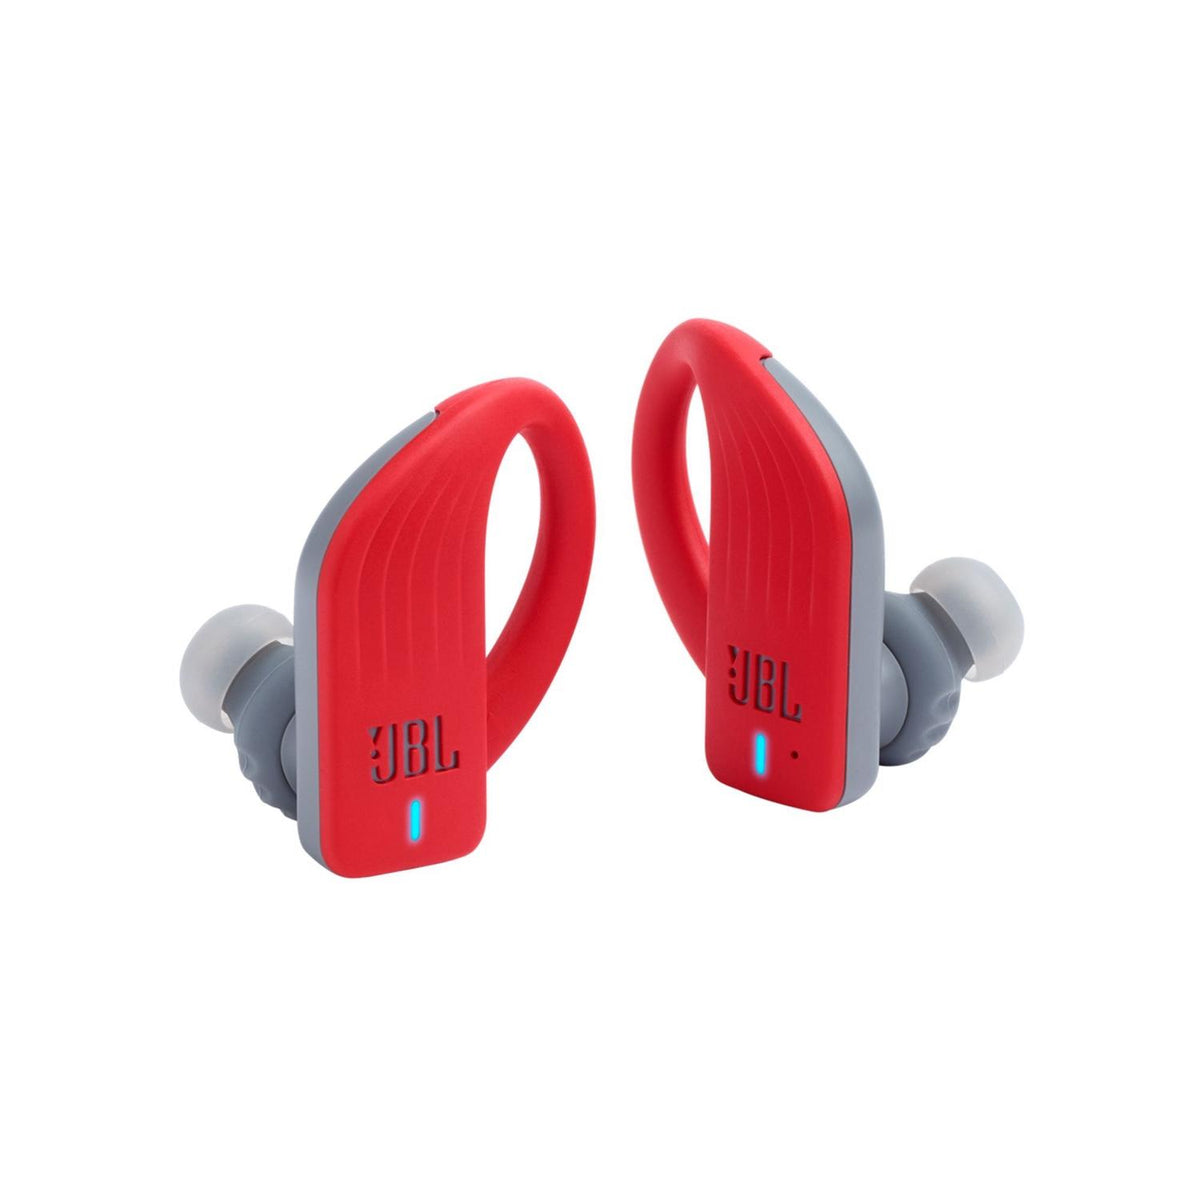 JBL Audífonos True Wireless Audífonos In Ear True Wireless Edurance PEAK Bluetooth - vertikal